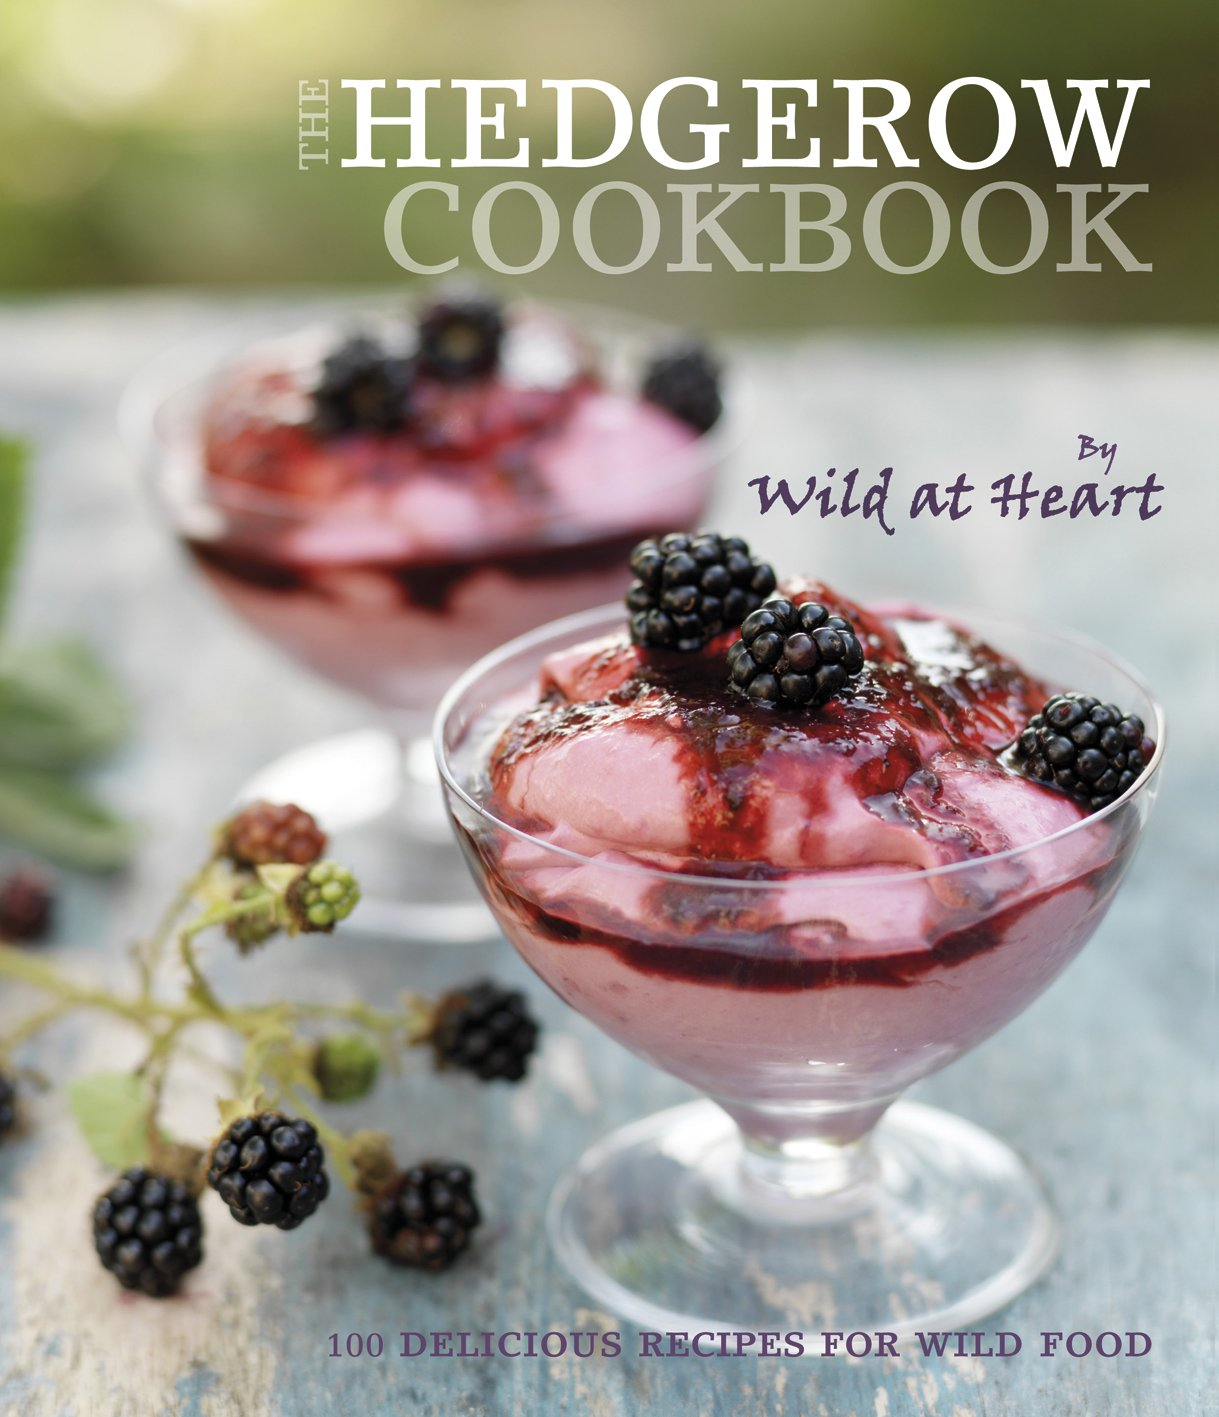 The hedgerow cookbook 100 delicious recipes for wild food wild at the hedgerow cookbook 100 delicious recipes for wild food wild at heart 9781862059566 amazon books forumfinder Images